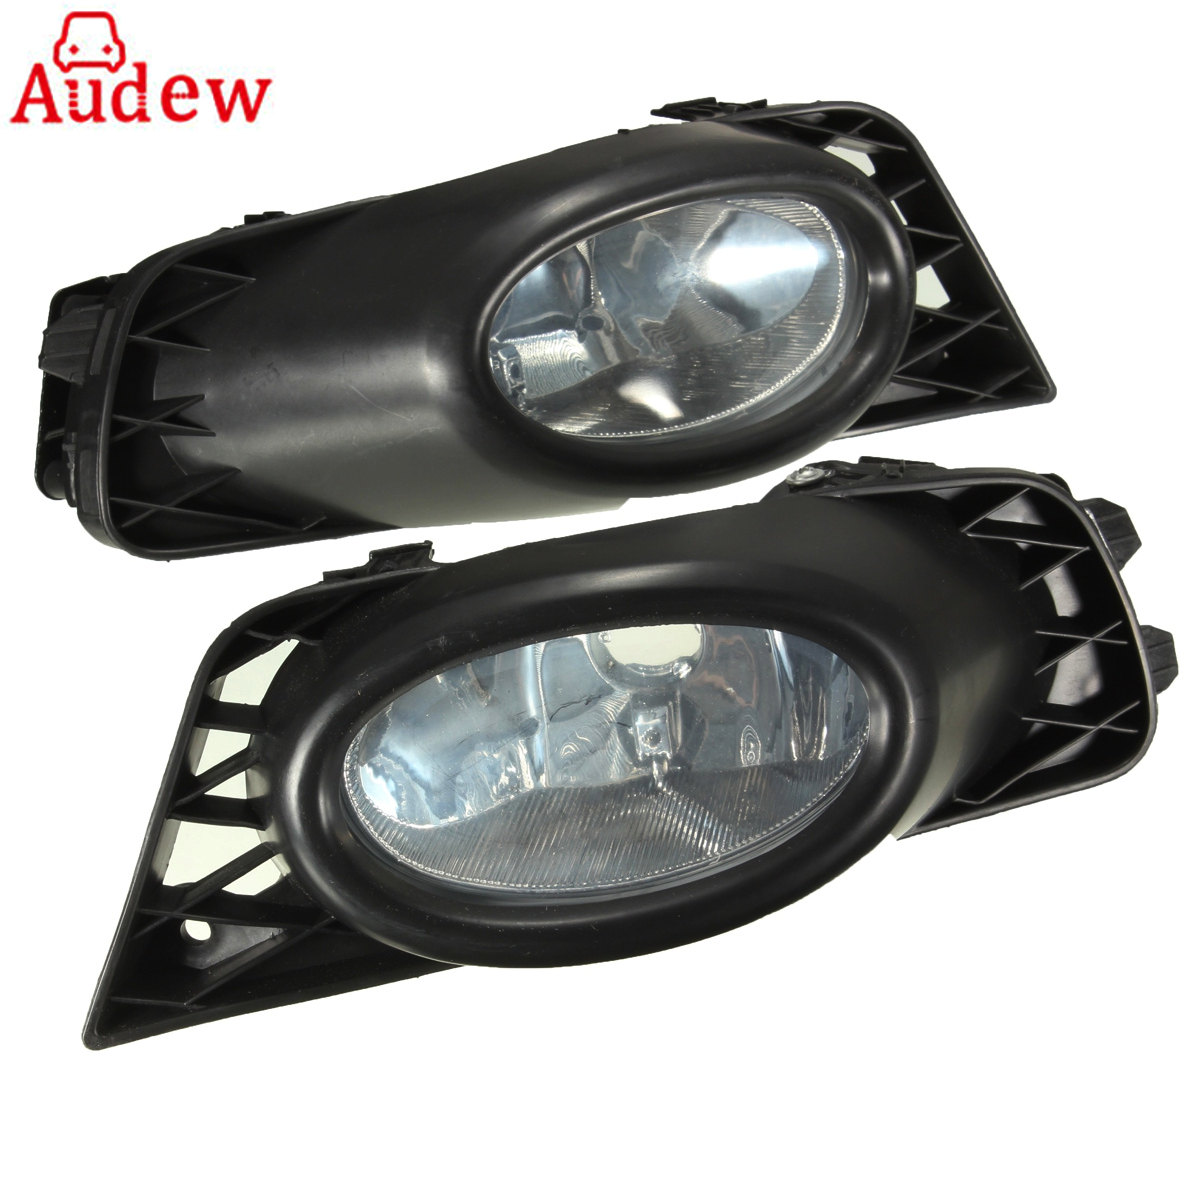 Car Driving Fog Light Clear Bumper With Harness & Switch For  Honda for Civic 4DR 09-11